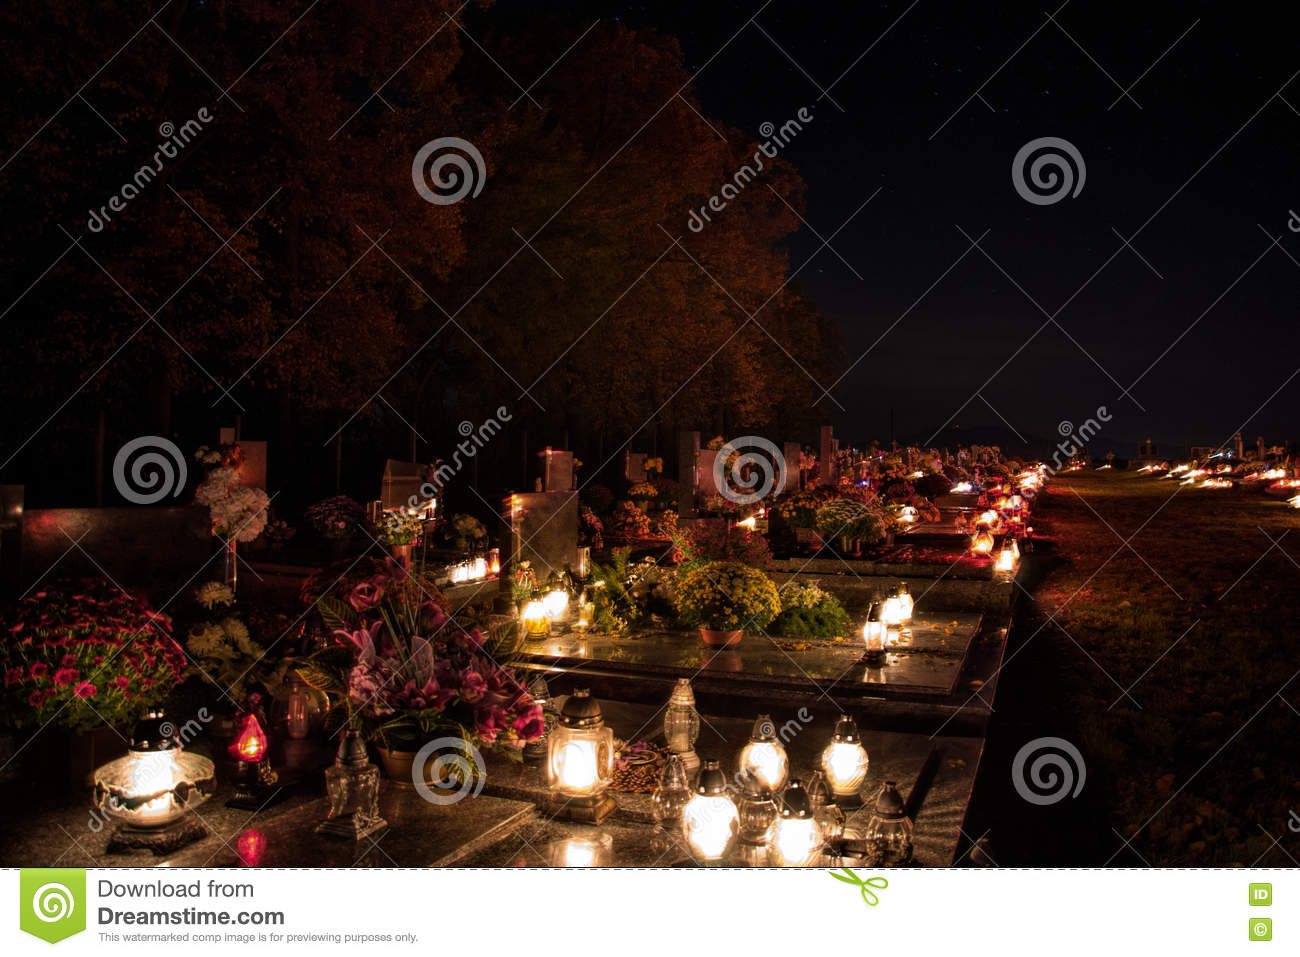 Votive candles lantern burning on the graves in Slovak cemetery at night time. All Saints  Day. Solemnity of All Saints